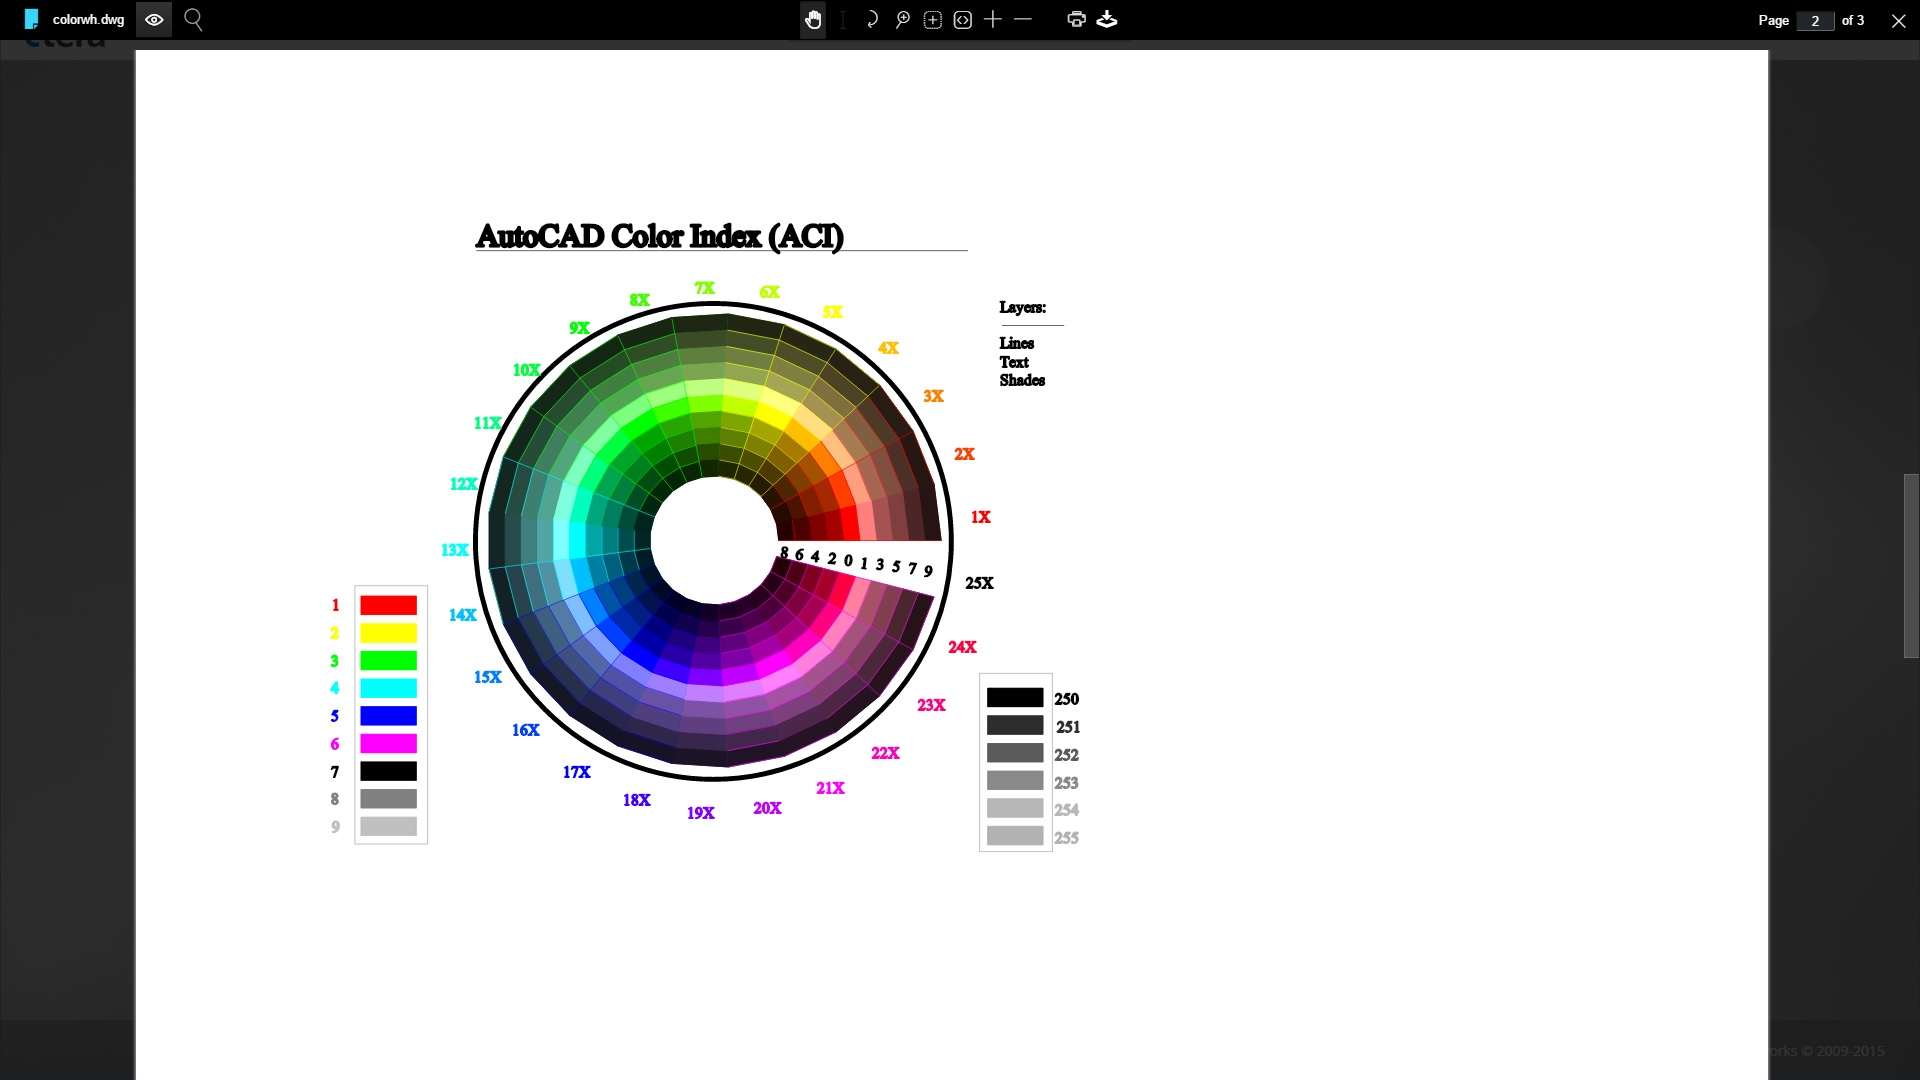 """AutoCAD """"color wheel"""" in-browser preview"""